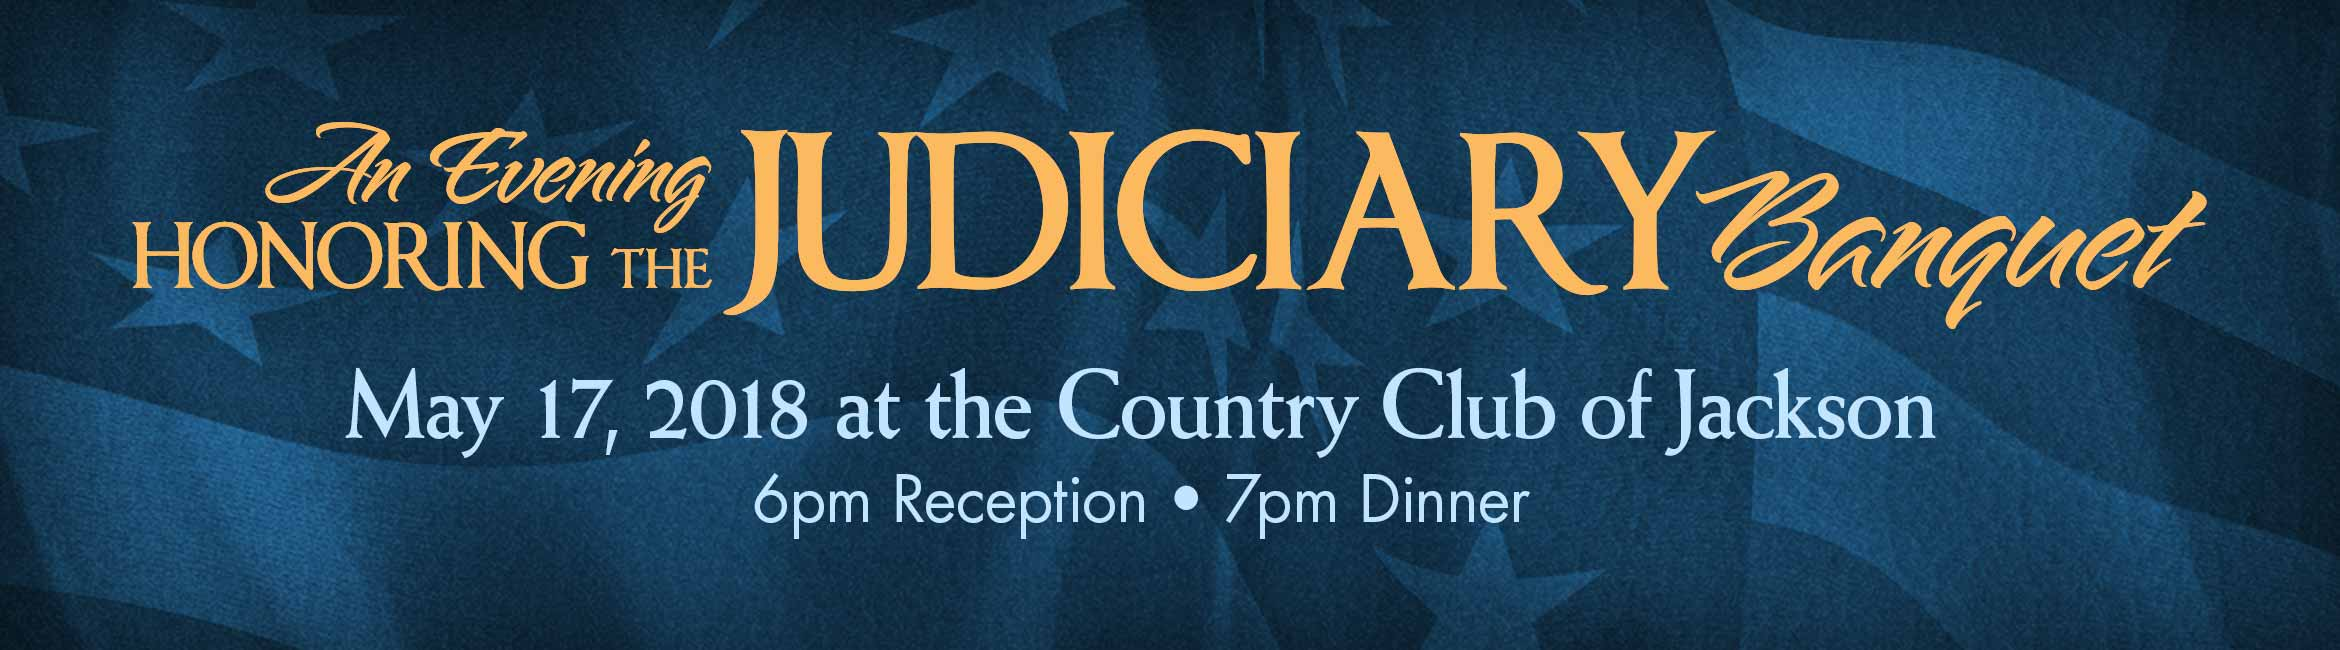 An Evening Honoring the Judiciary